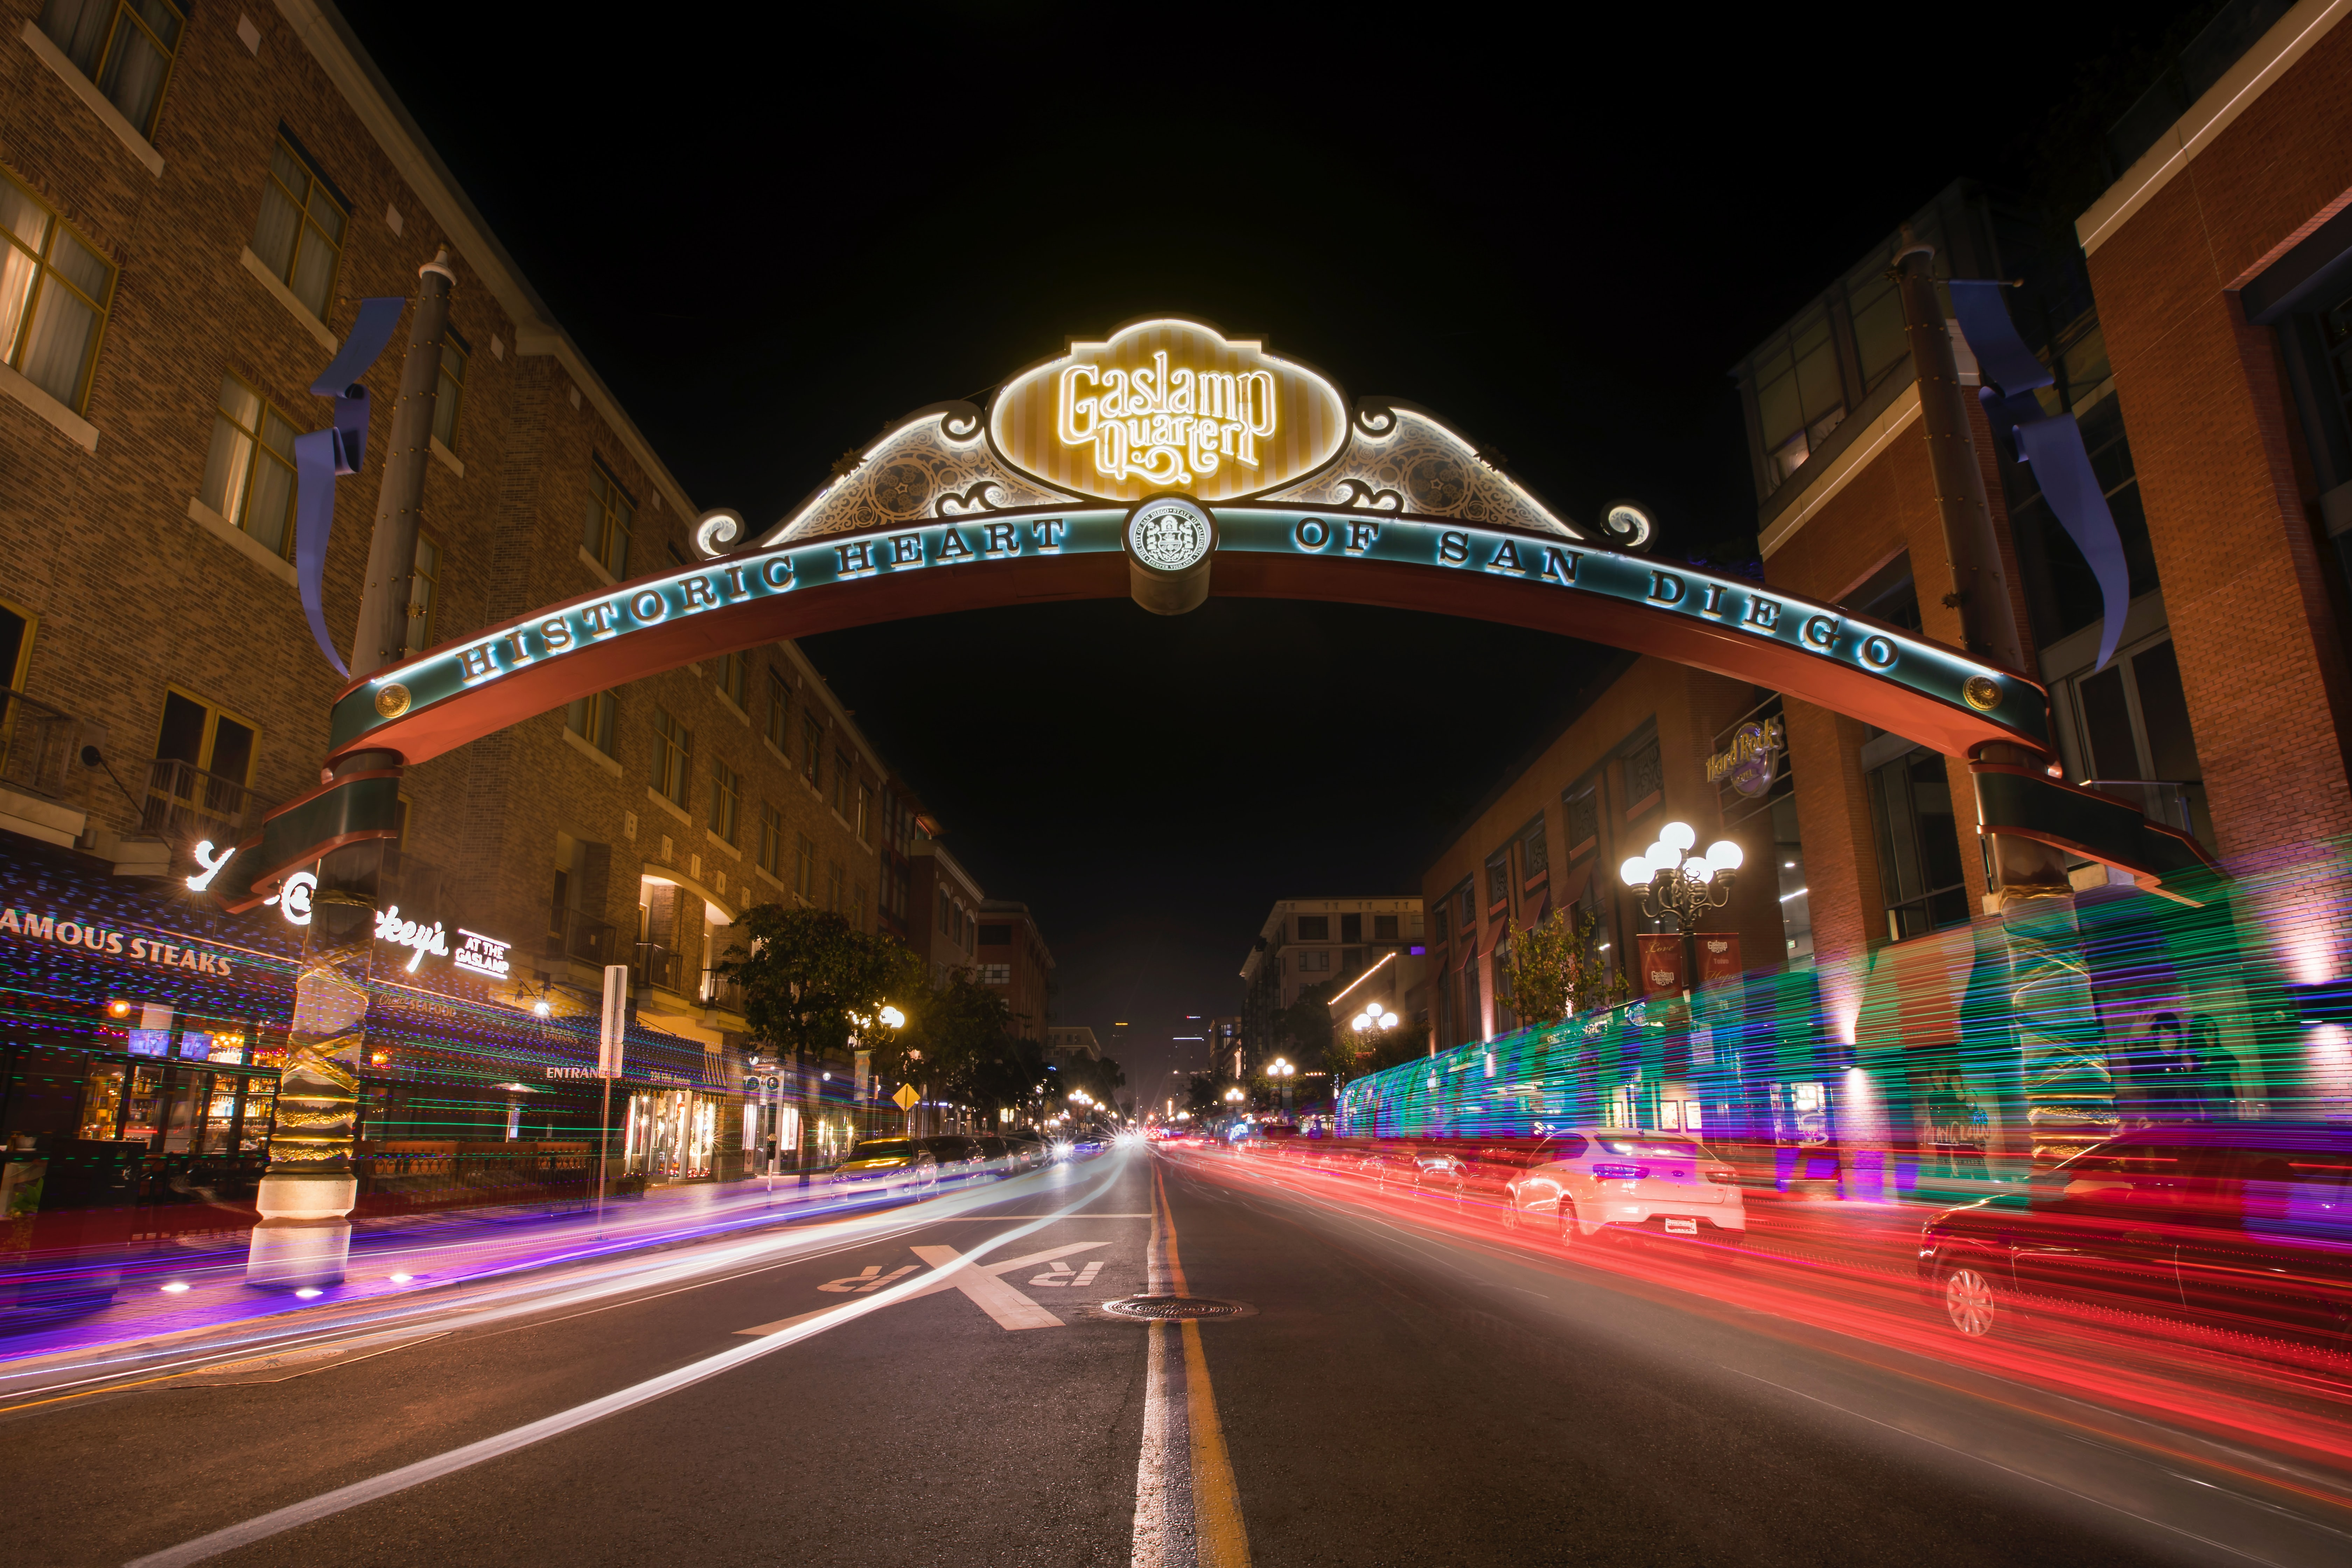 Photograph of San Diego's Gaslamp sign at night with motion blurred lights underneath